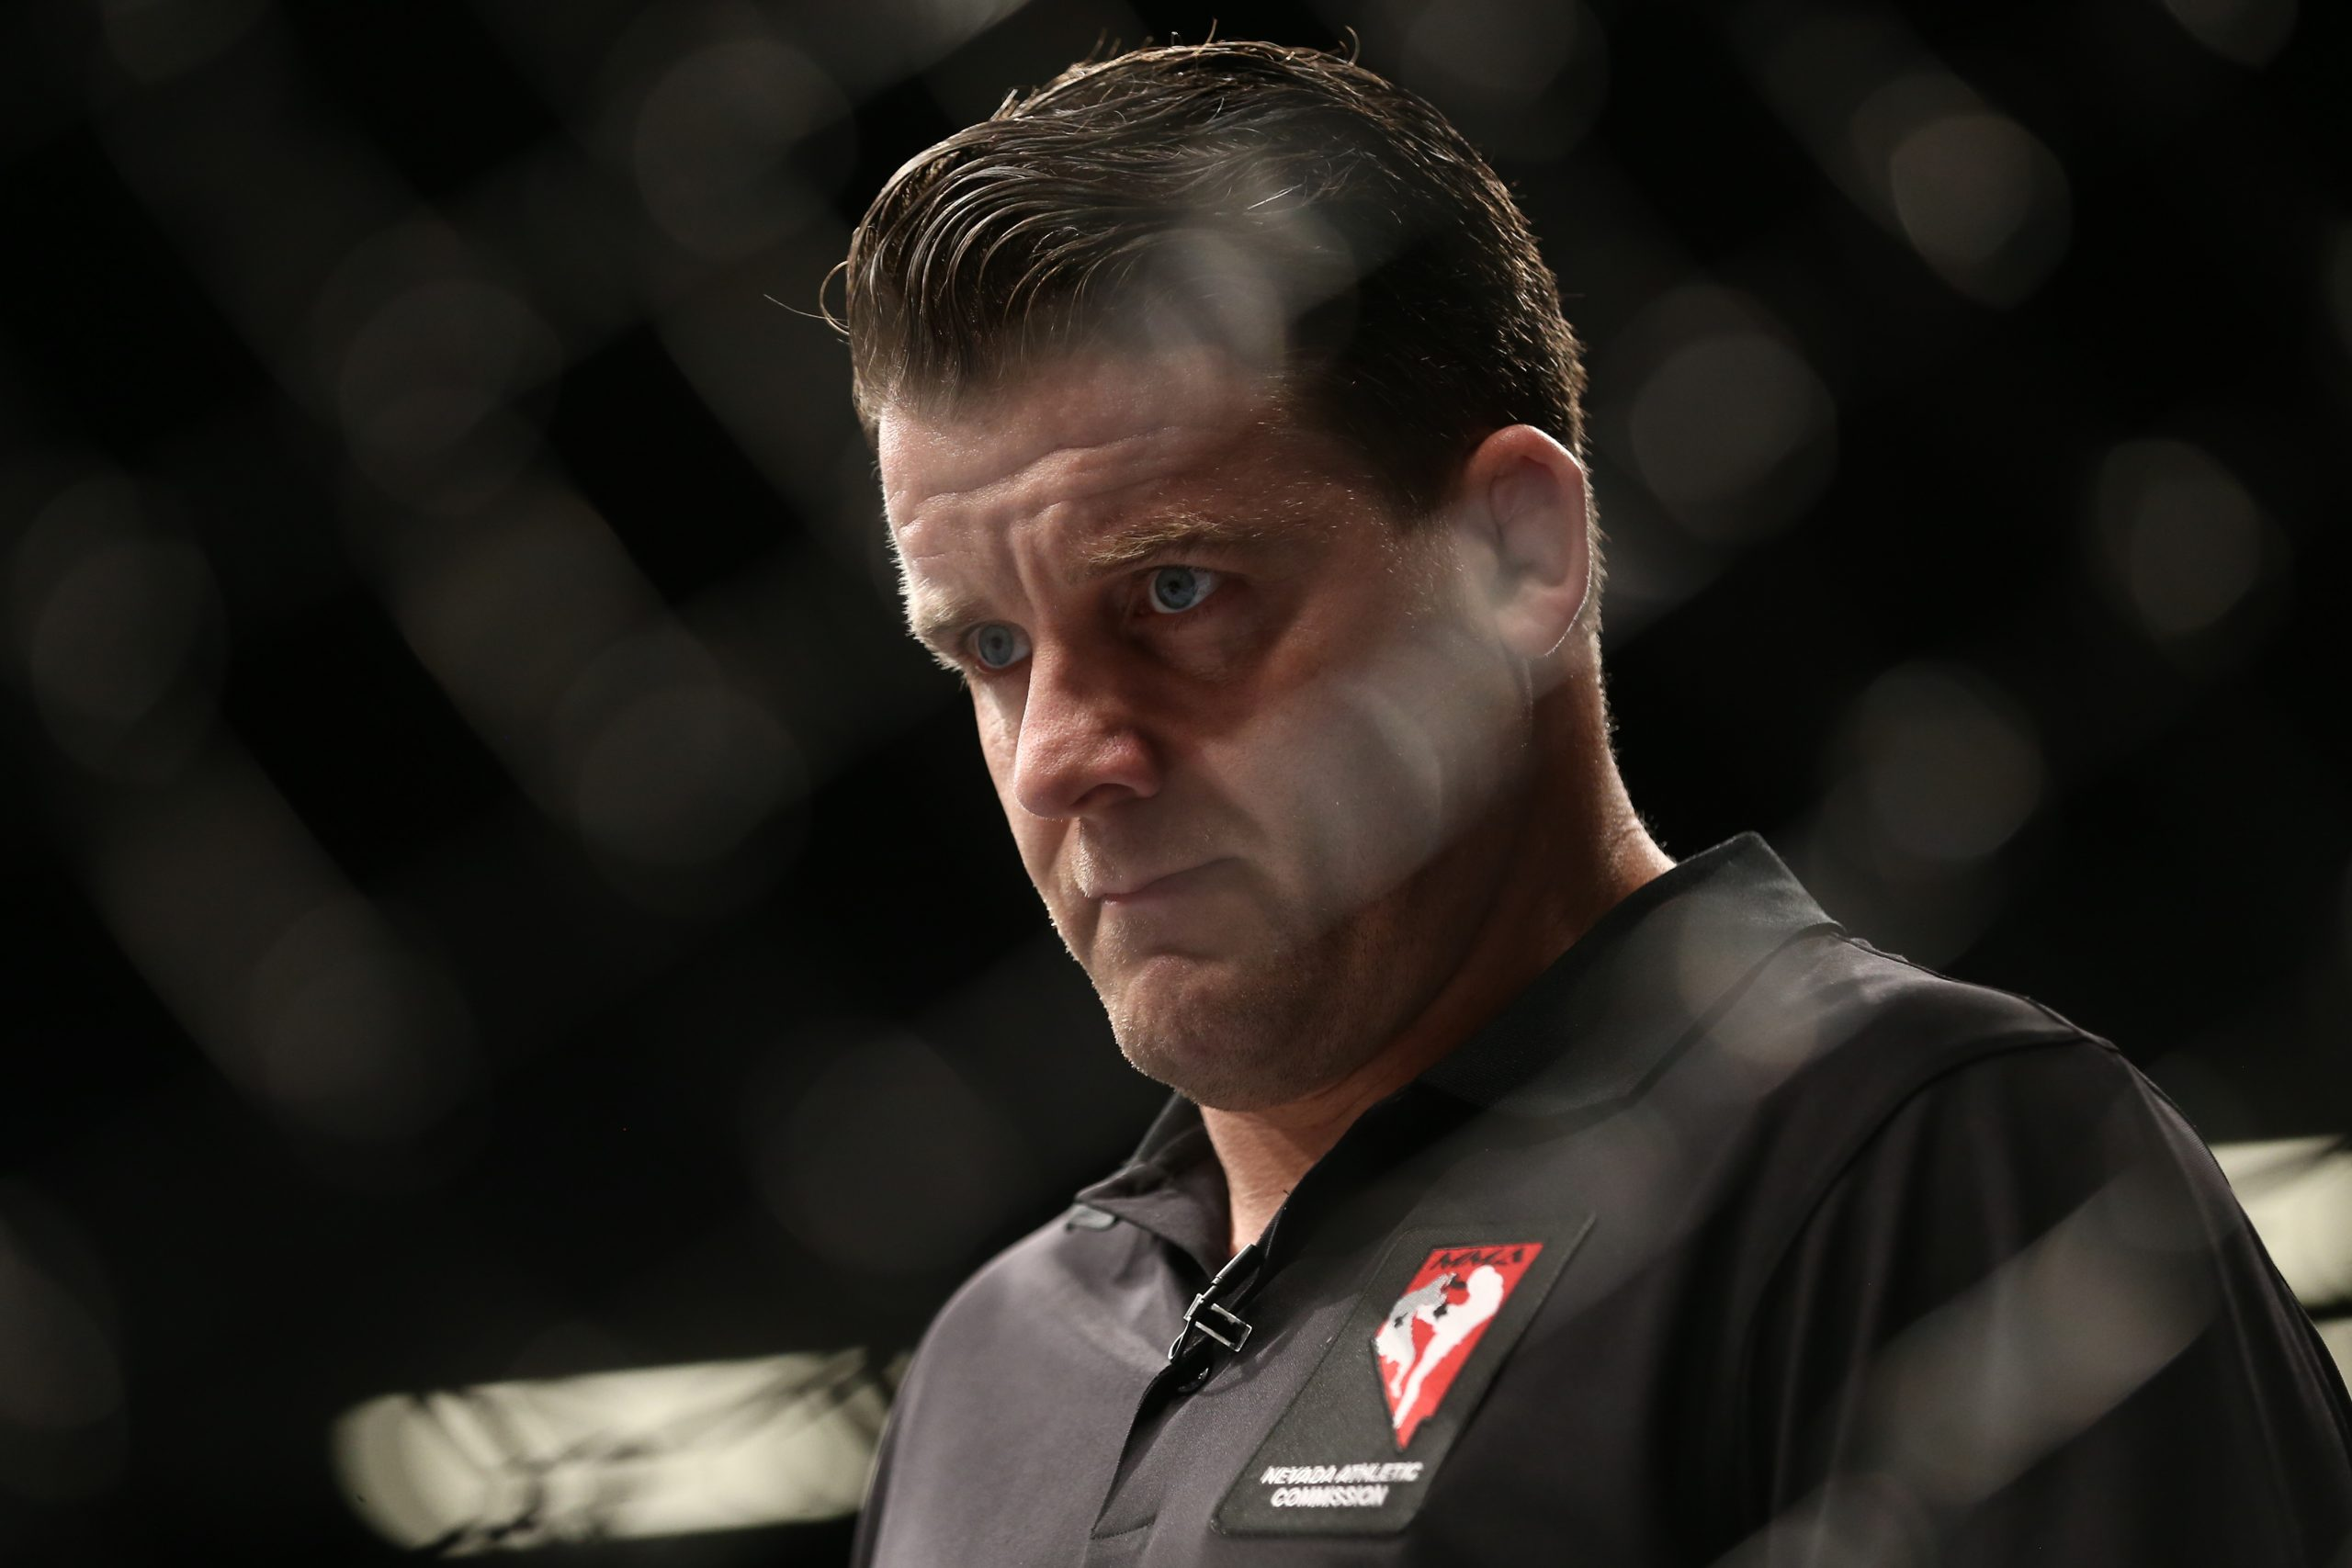 Marc Goddard is one of the top referees in the UFC